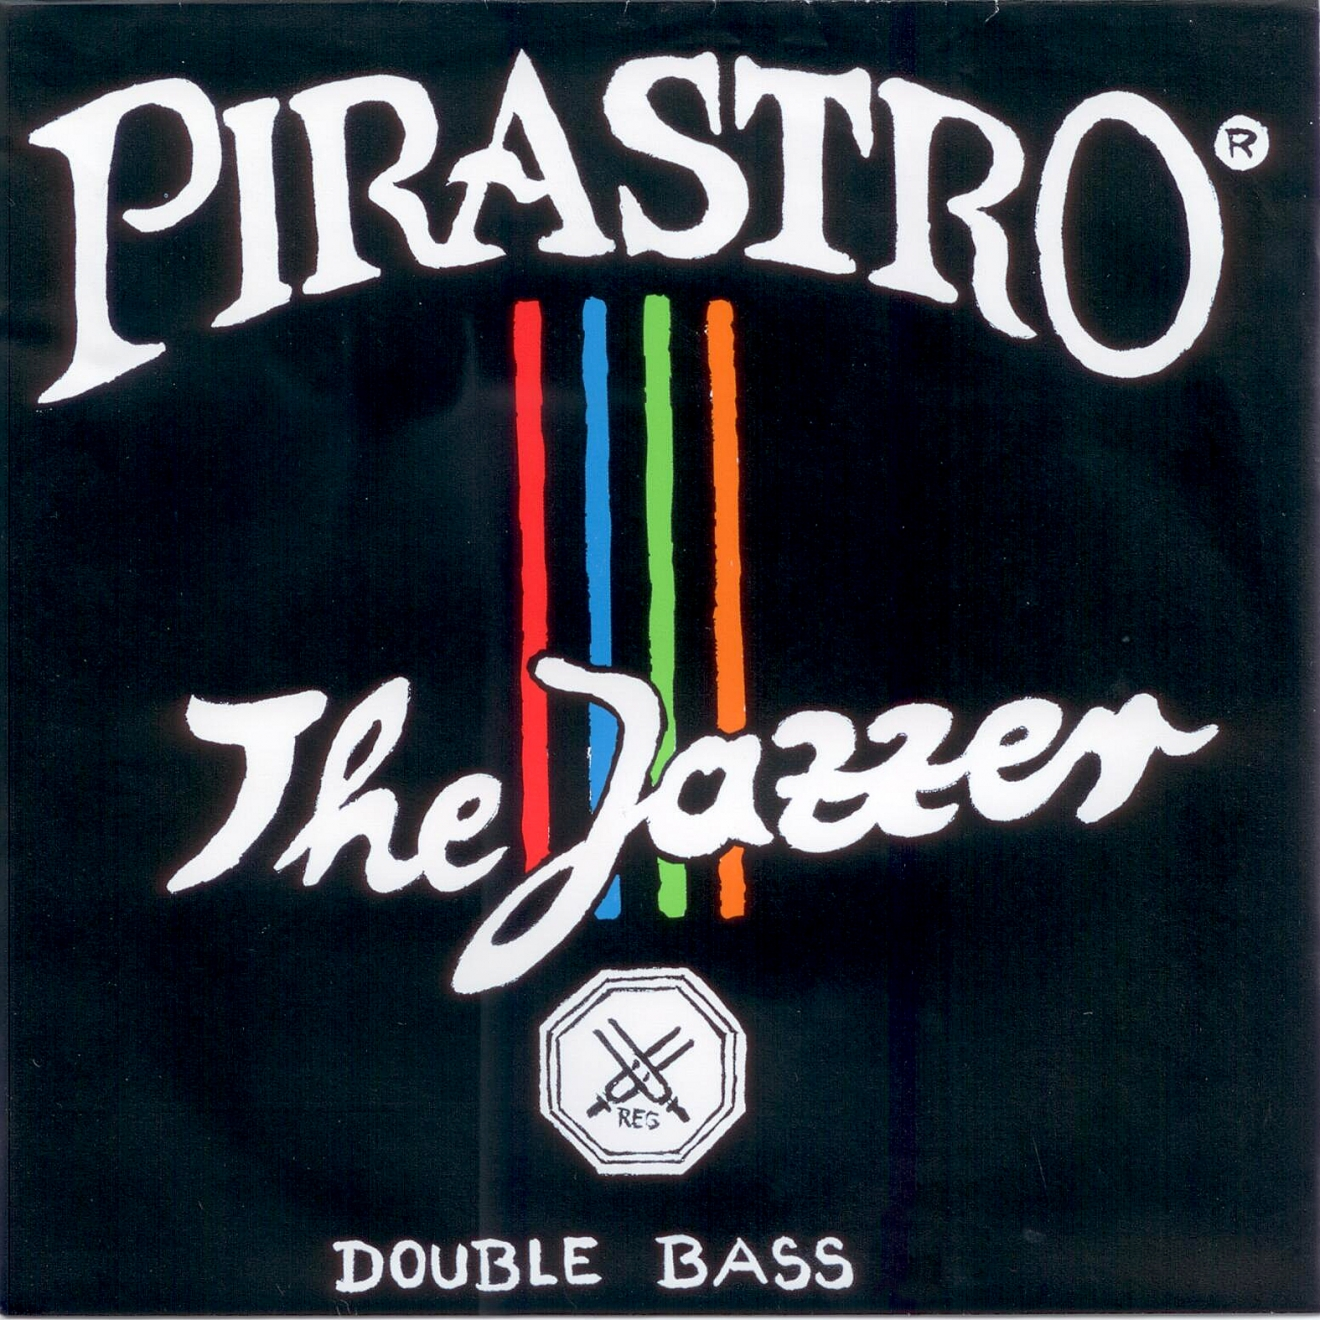 PIRASTRO The Jazzer/Wondertone Bass C hohe Solo